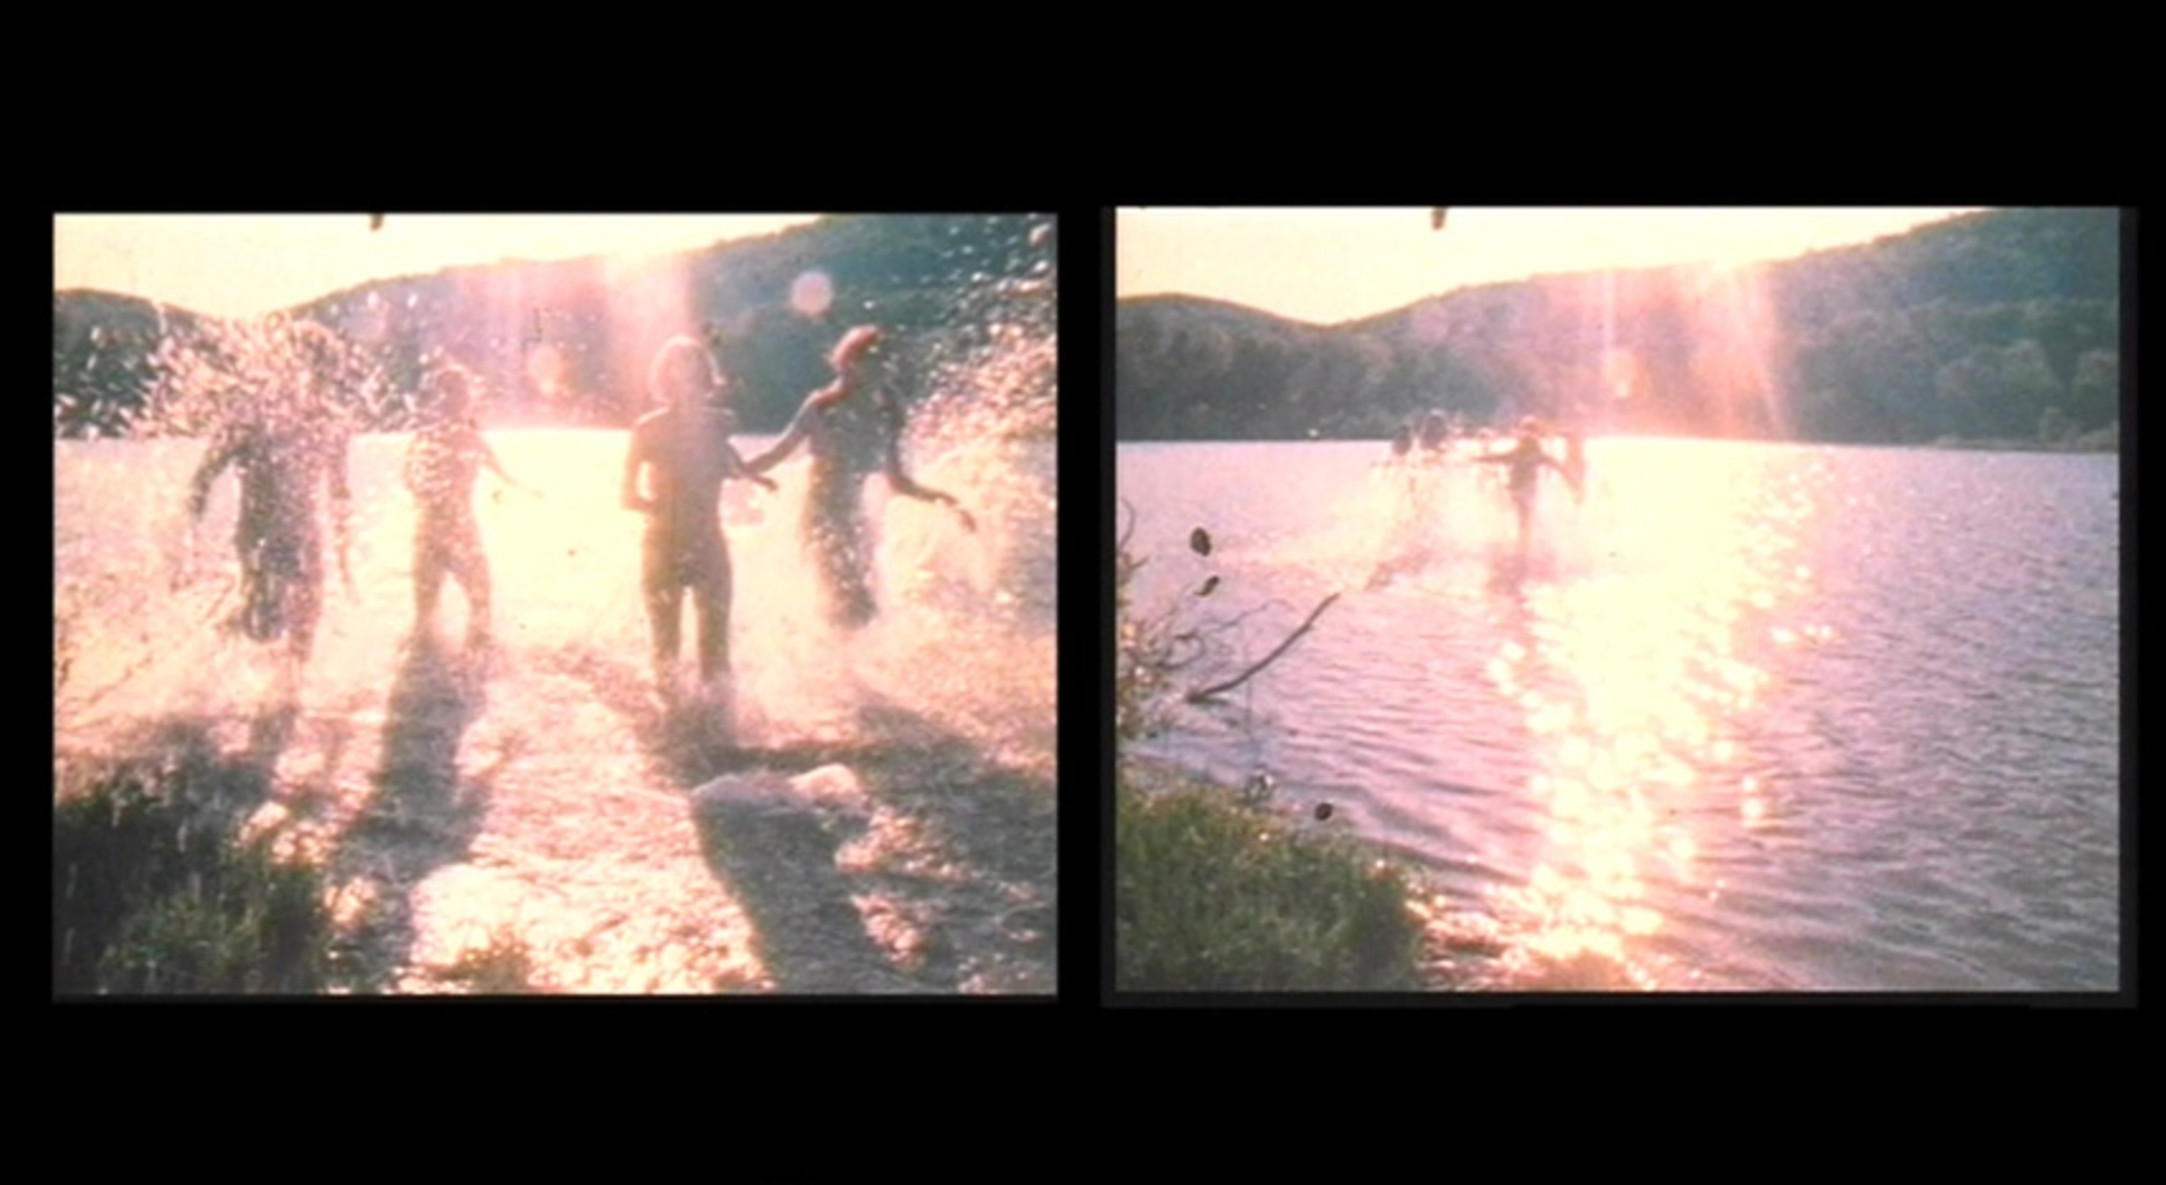 Carolee Schneemann, Water Light/Water Needle (Lake Mah Wah, NJ), 1966, 11:13 min, color, sound, 16 mm film on video, (film still)